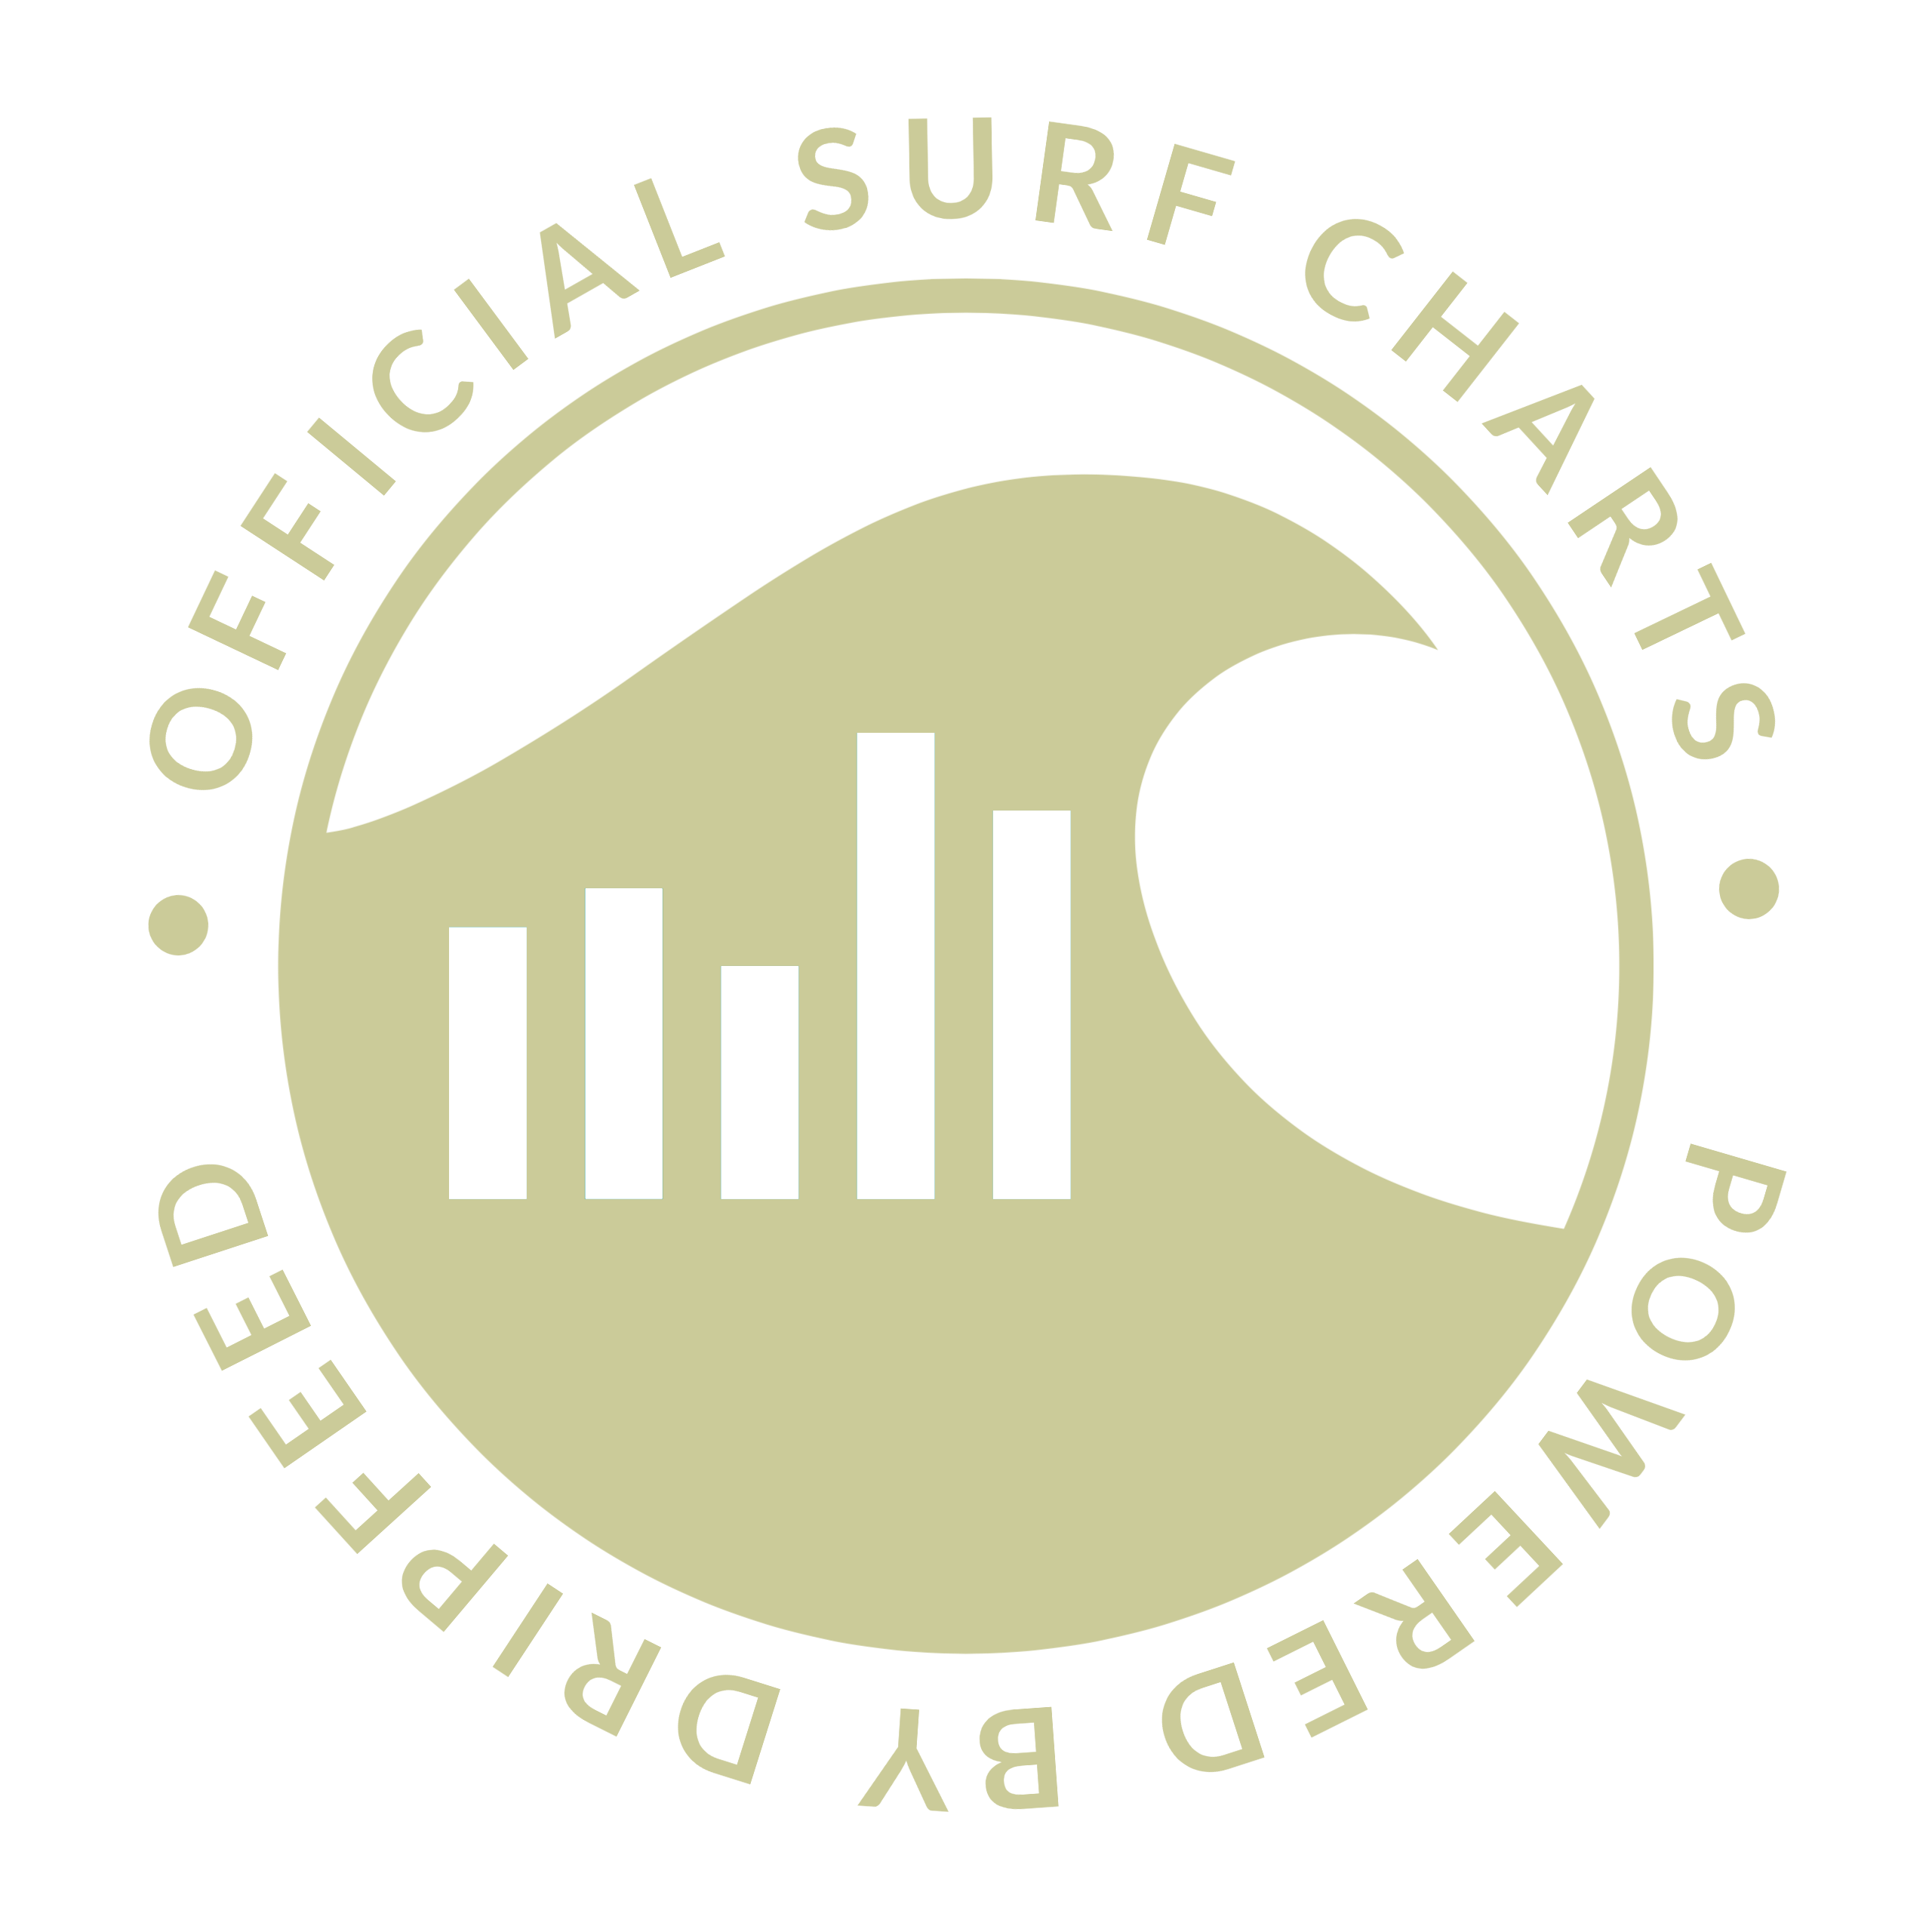 OfficialSurfCharts-logo1 The Official Surf Charts